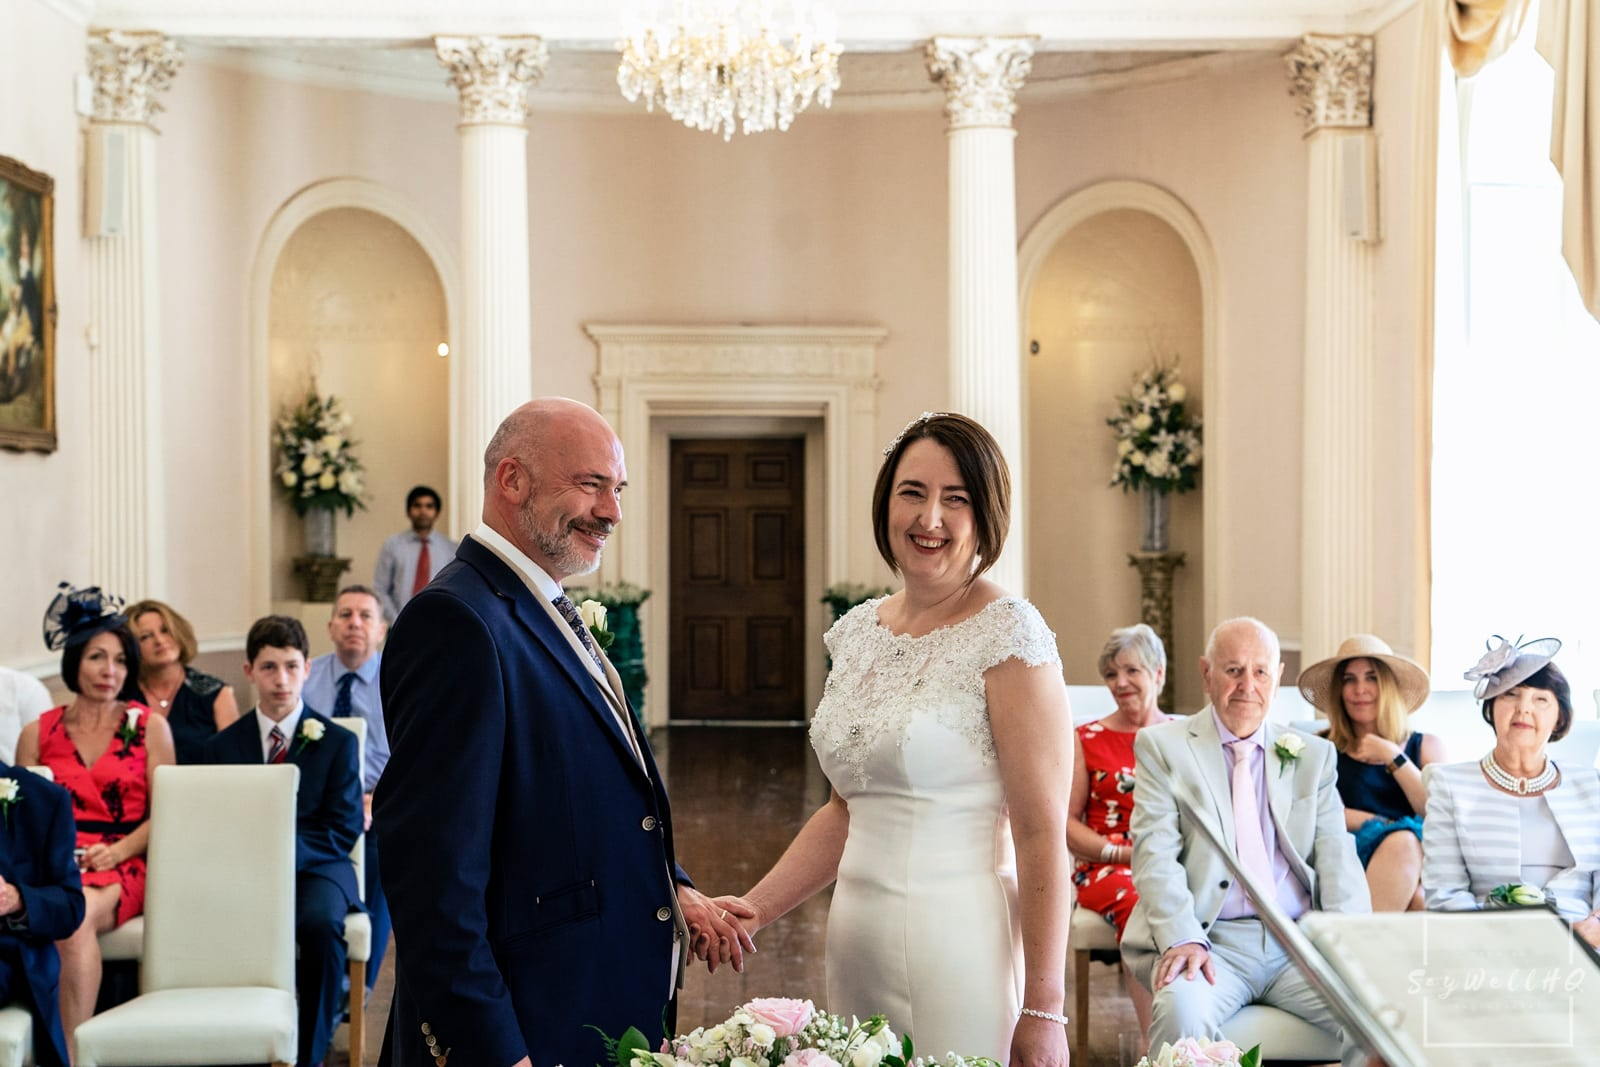 Colwick Hall Wedding Photography + Colwick Hall Wedding Photographer + Bride and Groom looking happy during their wedding ceremony at Colwick Hall Hotel